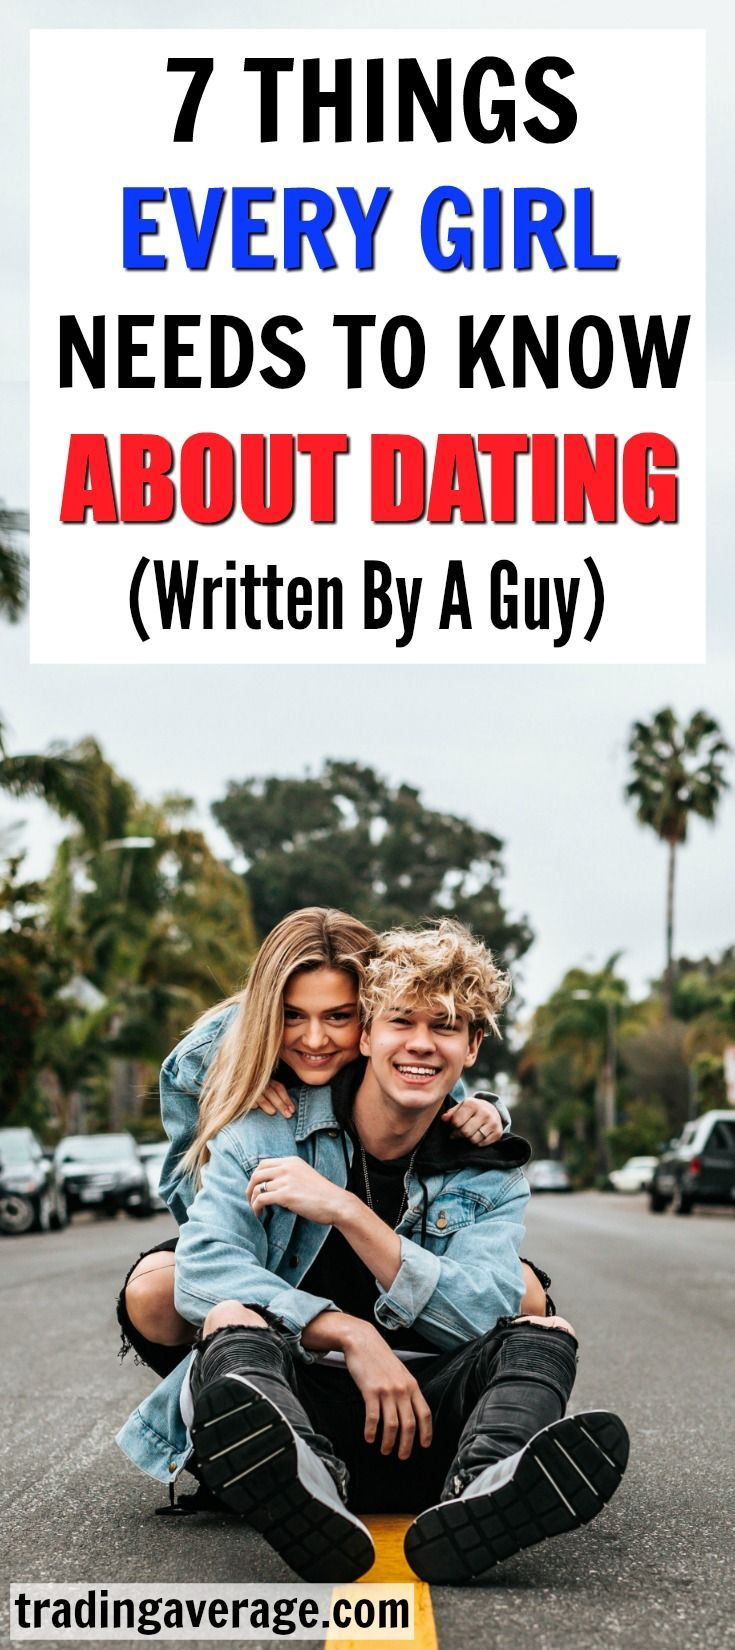 dating when separated uk